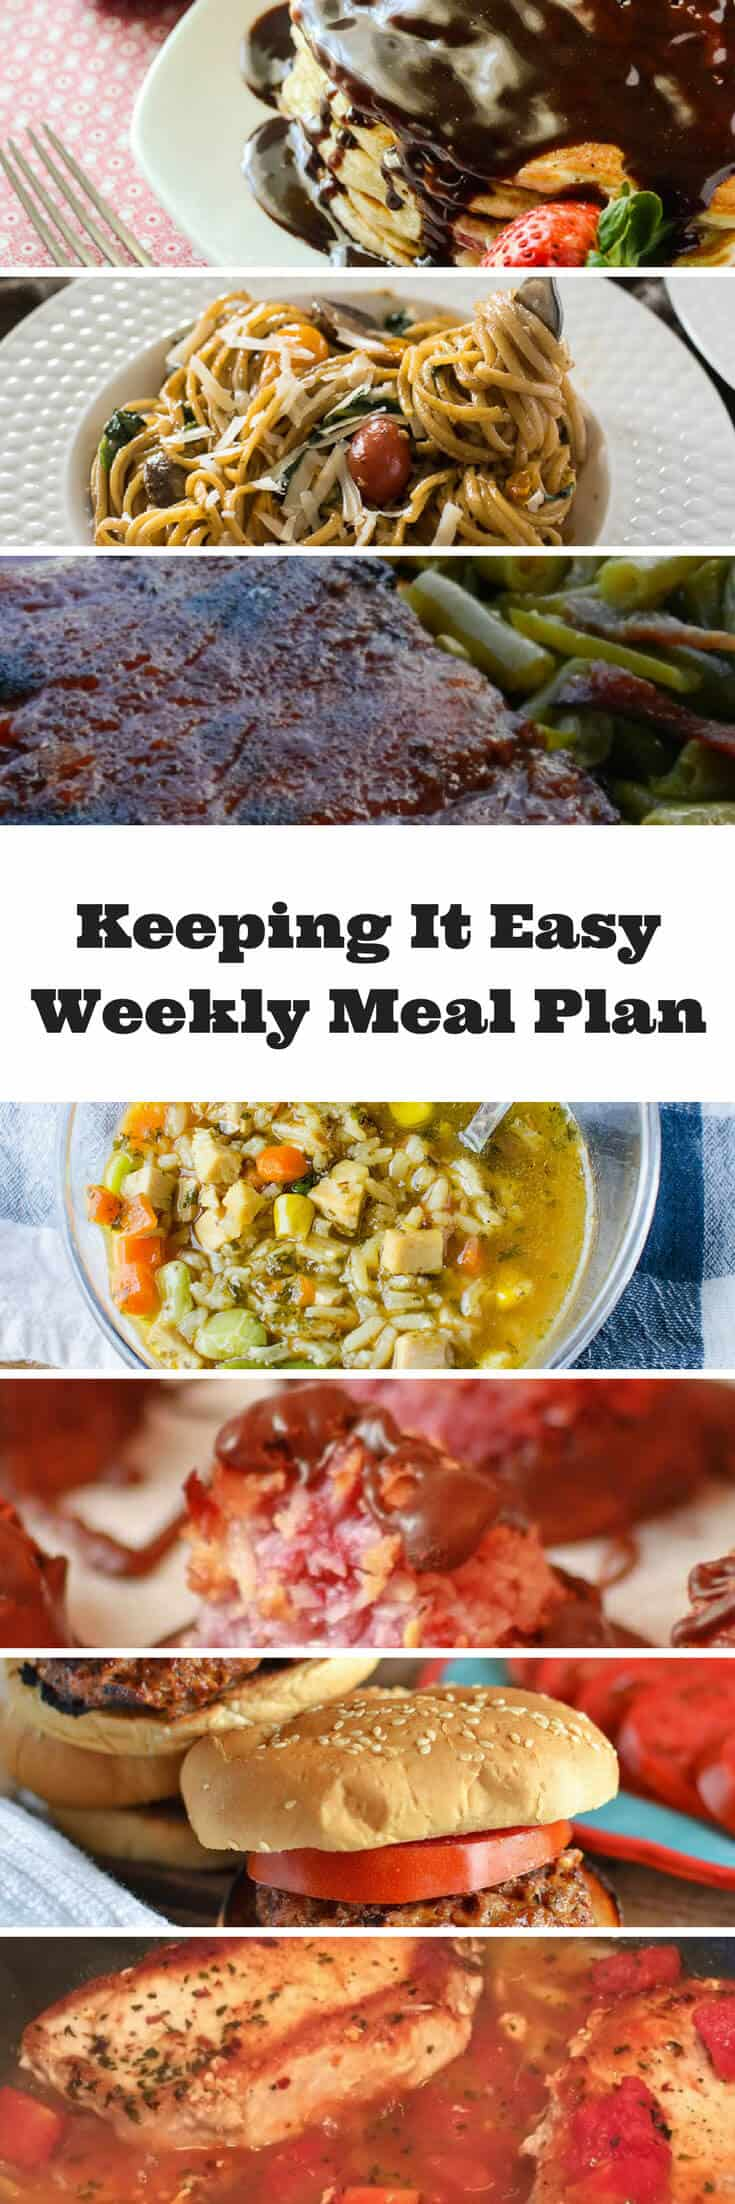 #KeepItEasy Weekly Meal Plan - Week 4